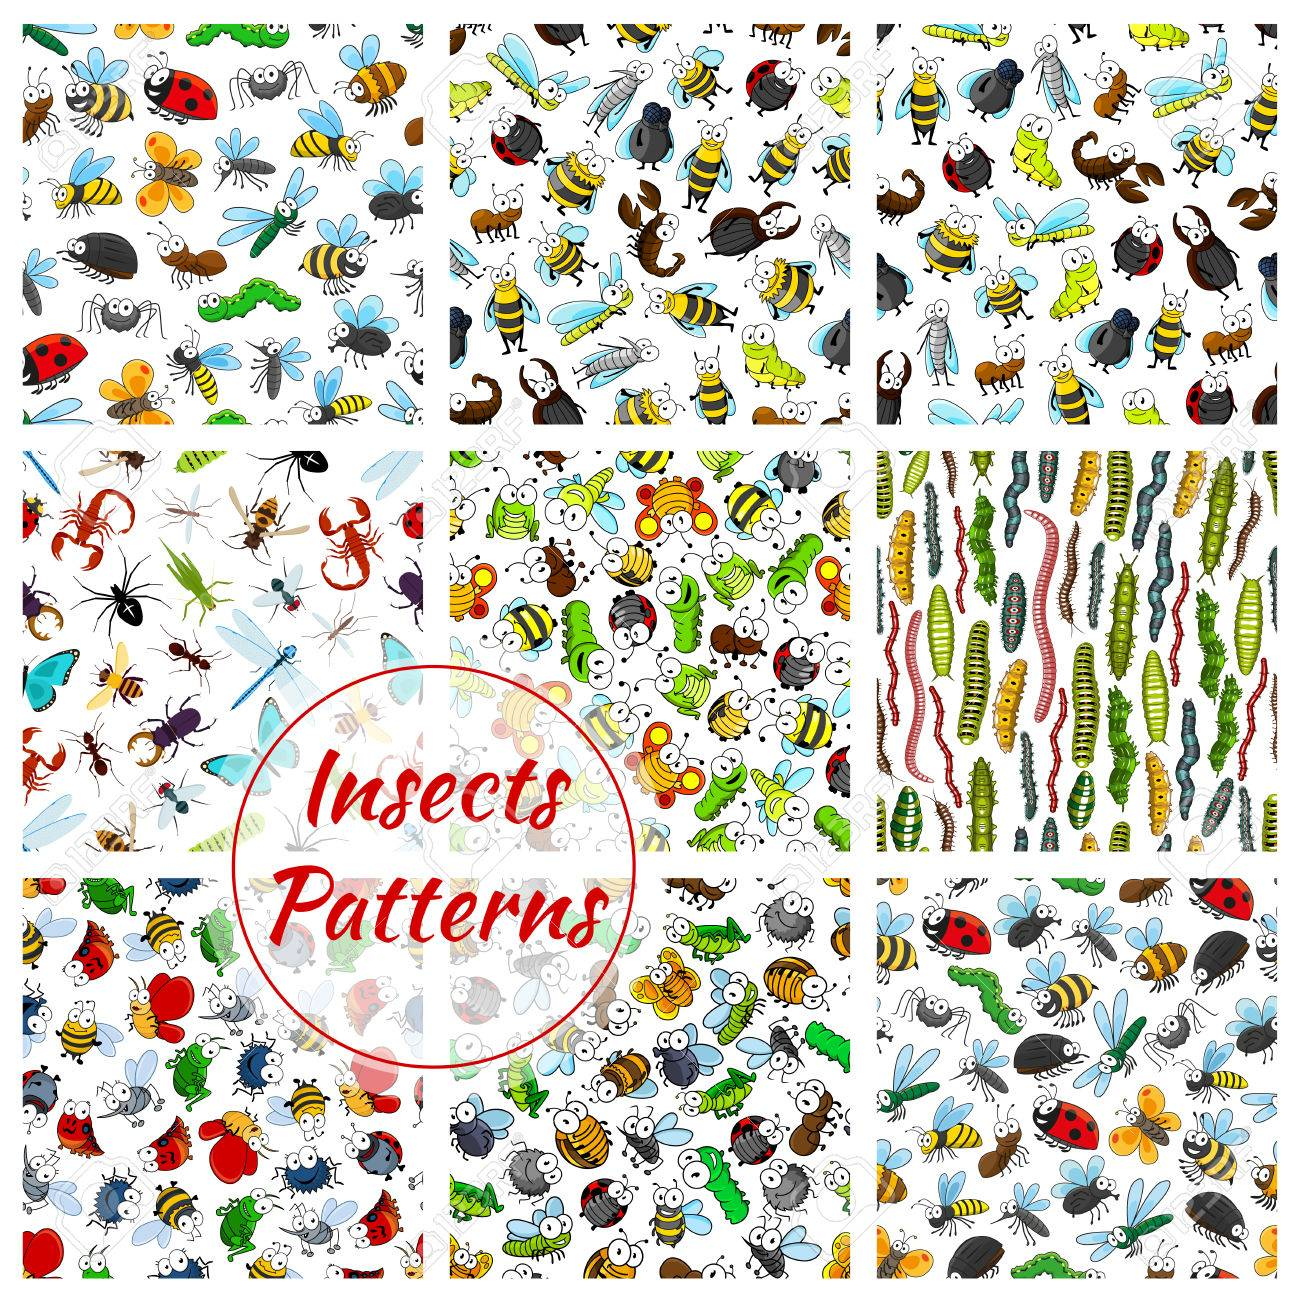 insects and bugs patterns set cartoon smiling bee worm and